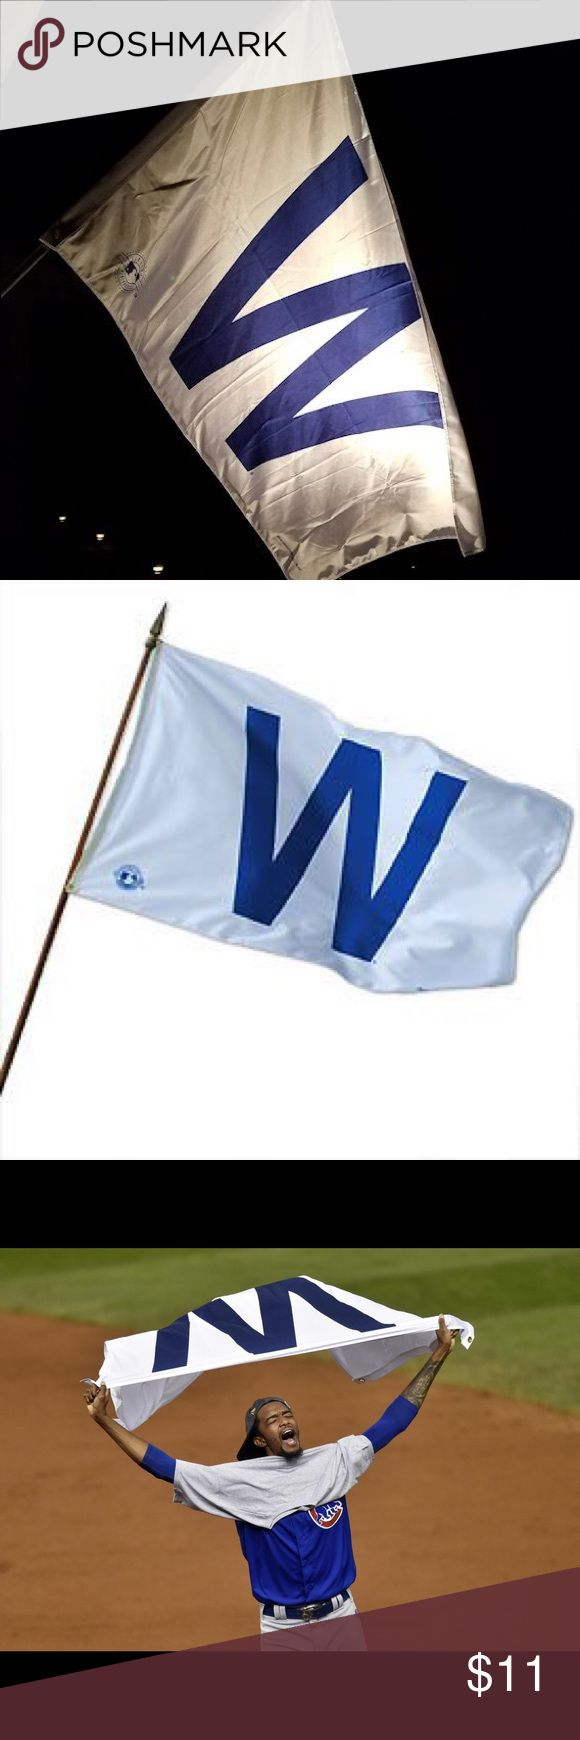 """Chicago Cubs """"W"""" WIN House Flag Brand new Chicago Cubs W flag! Make your house stand out after every Cubs win by flying your """"W"""" WIN flag proudly. Made of polyester, 3ft by 5ft in size, attaches to flagpole by attached metal grommets. Flagpole not included.  NOTE: Also doubles as a cape and a blanket. :) Please check out my other listings for more Cubs merchandise! Other"""